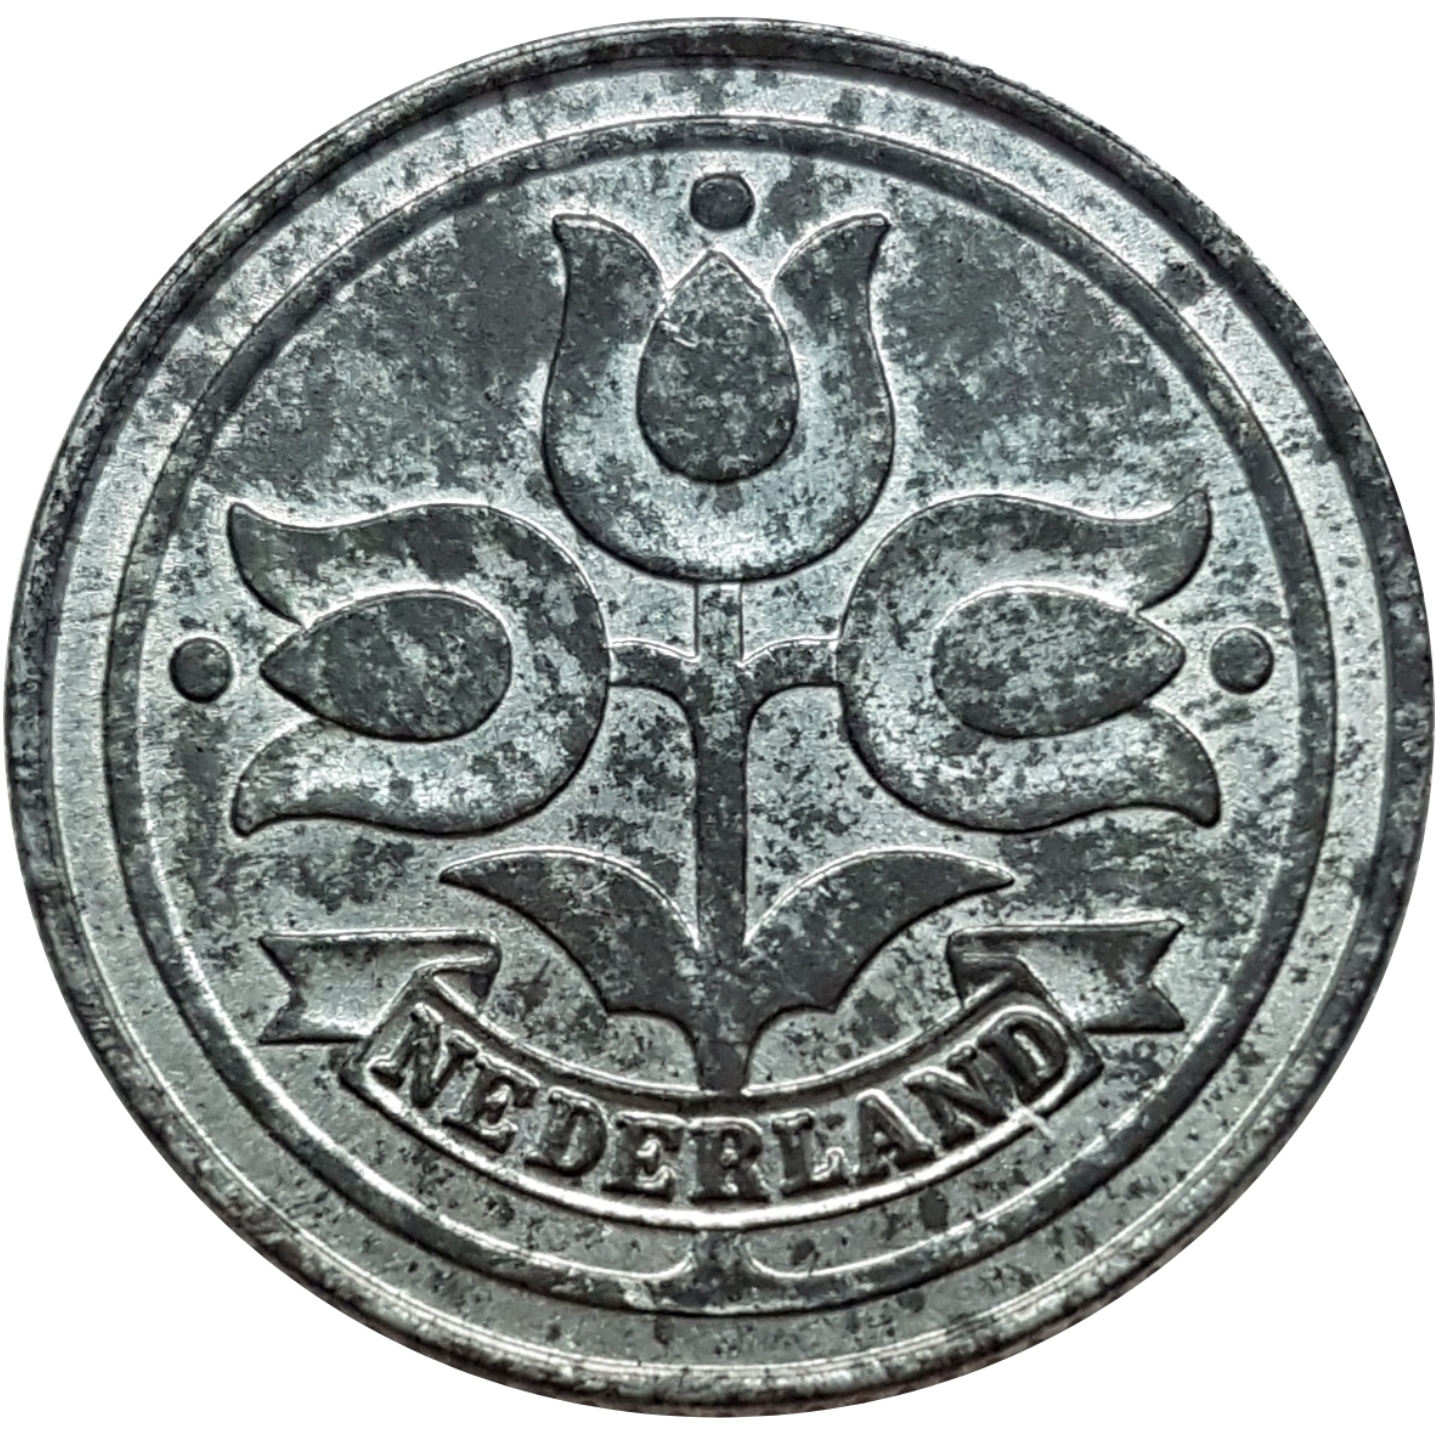 WWII #1 German Occupation Netherlands 1943-10 Cents Zinc Coin